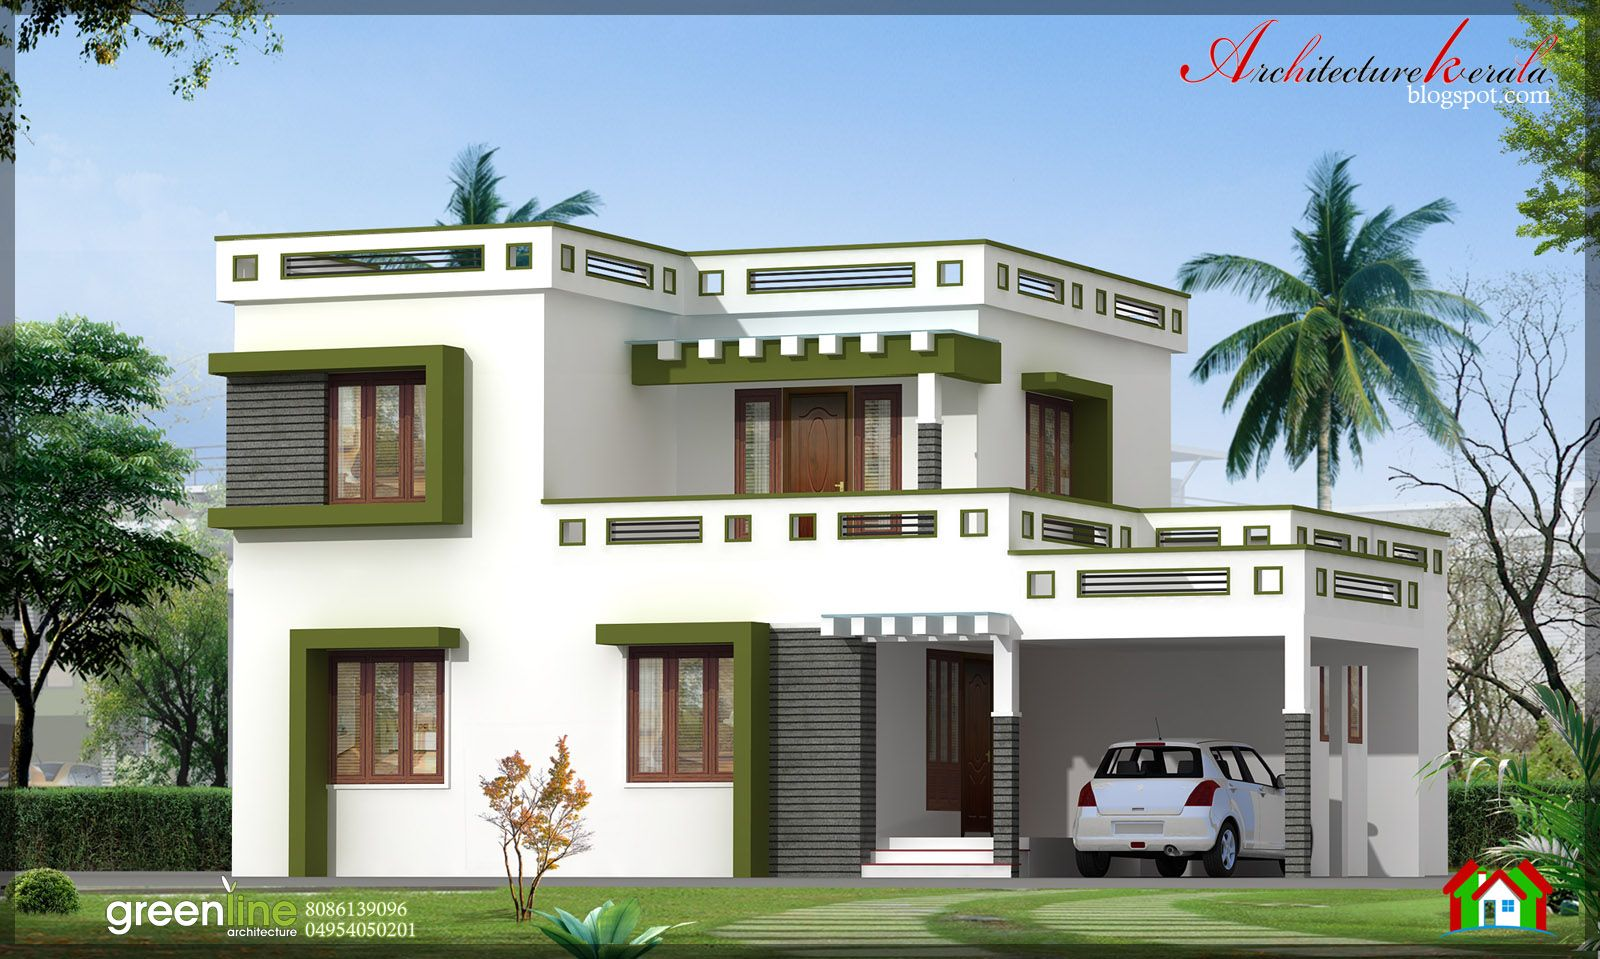 Kerala house plan photos and its elevations contemporary for Kerala house images gallery